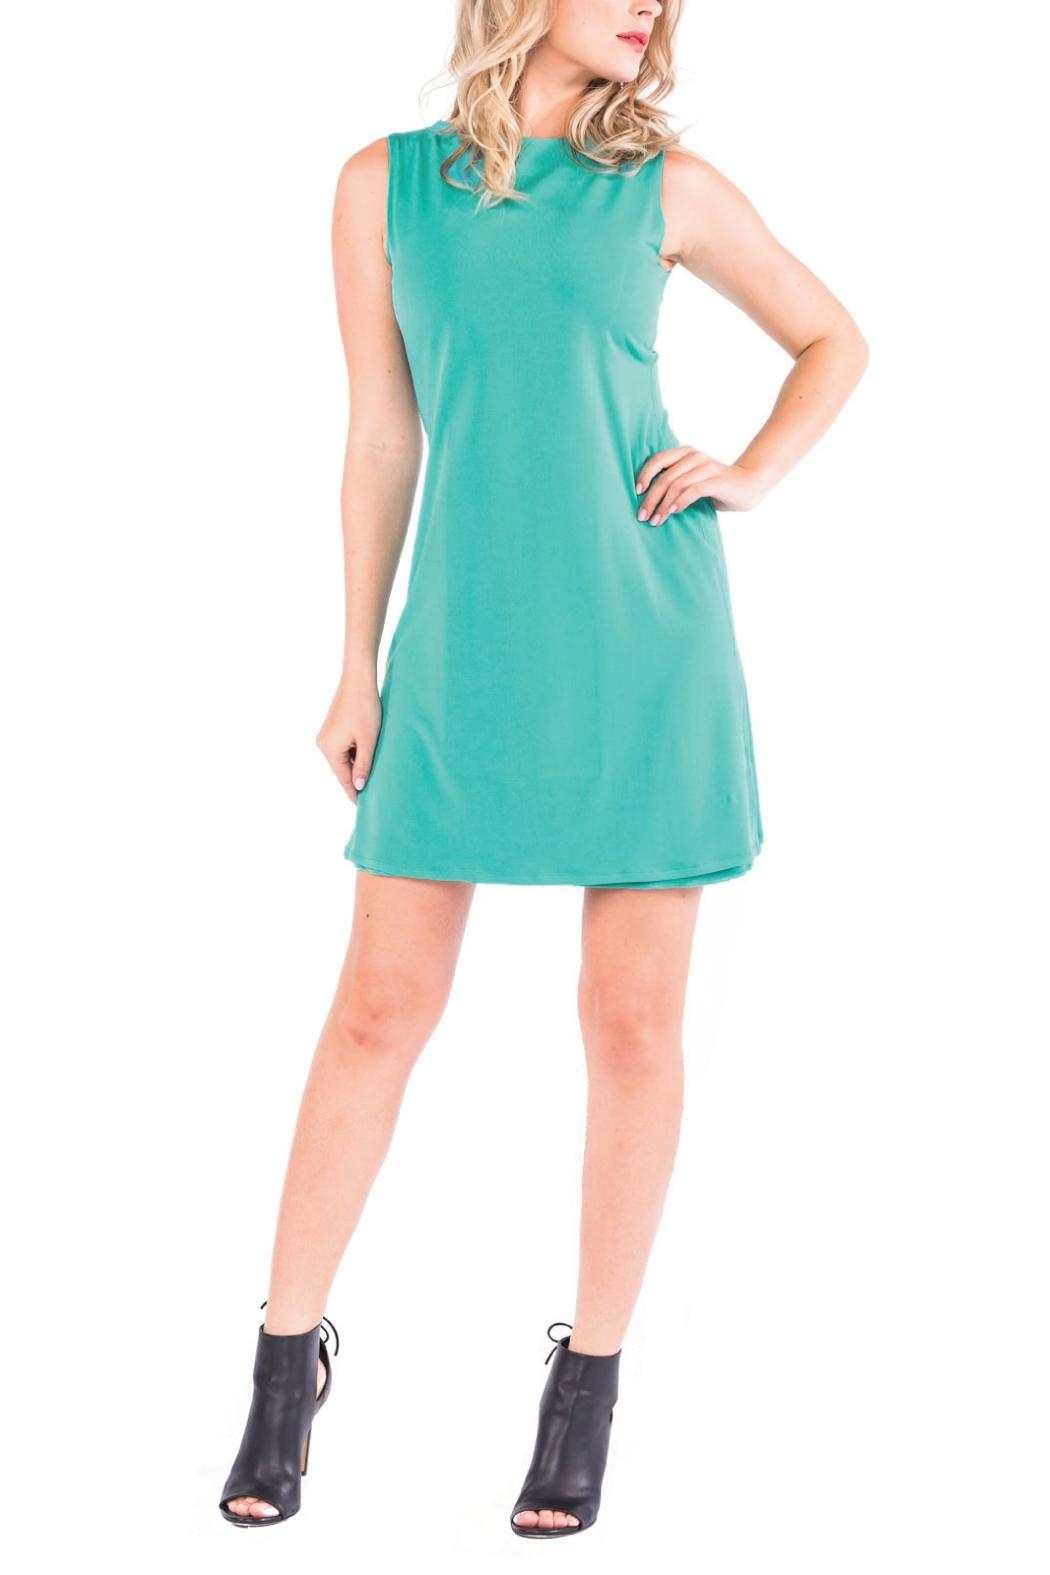 Eva Varro Bateau Mini Dress - Front Cropped Image